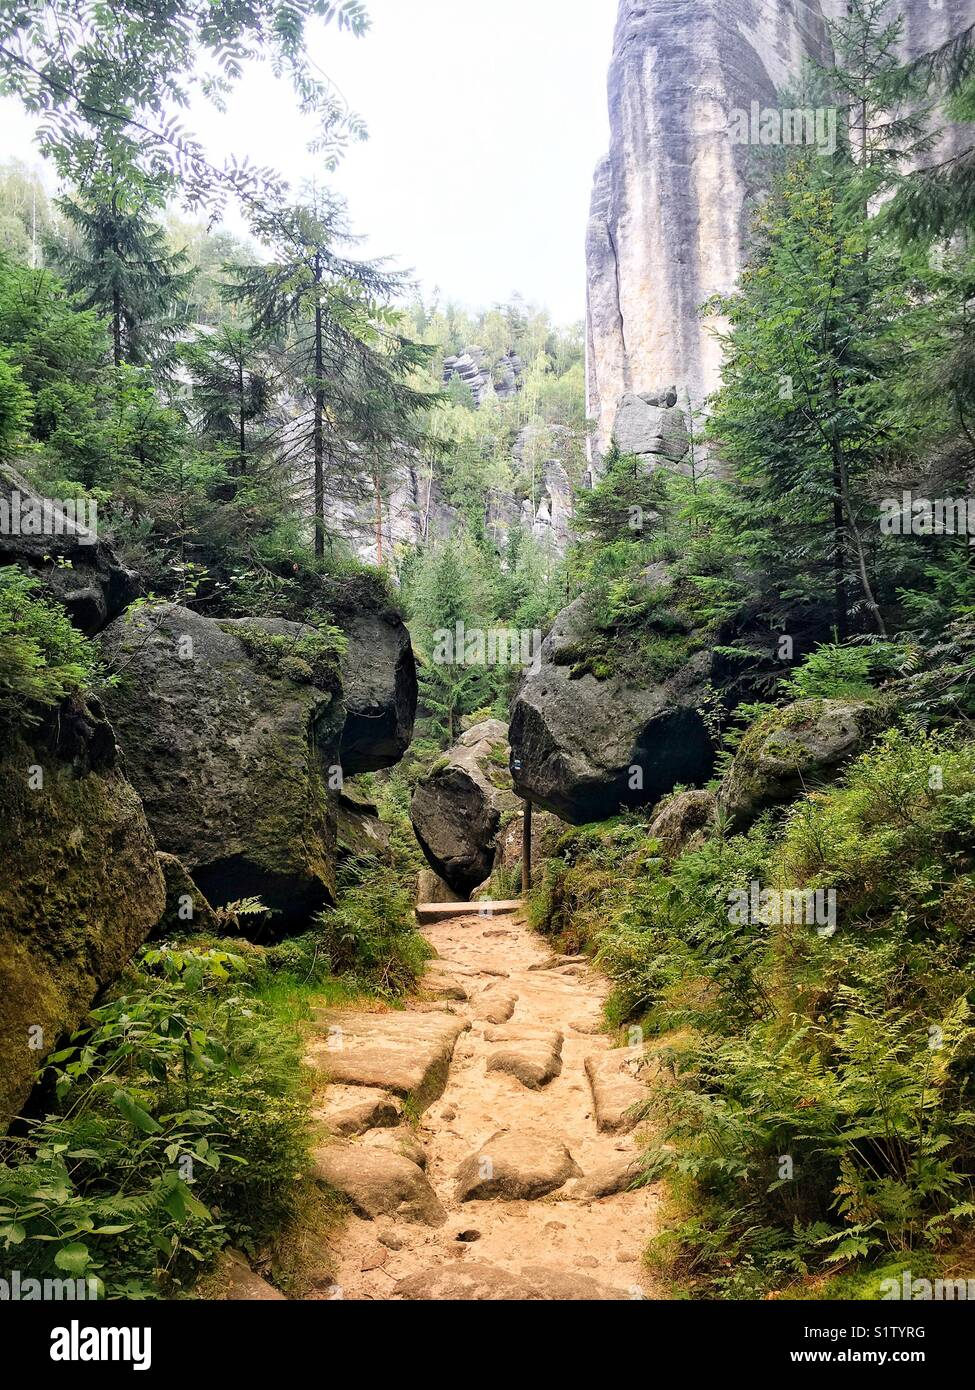 Tourist track in Adrspach Teplice Rocks Landscape park in Czech Republic - Stock Image